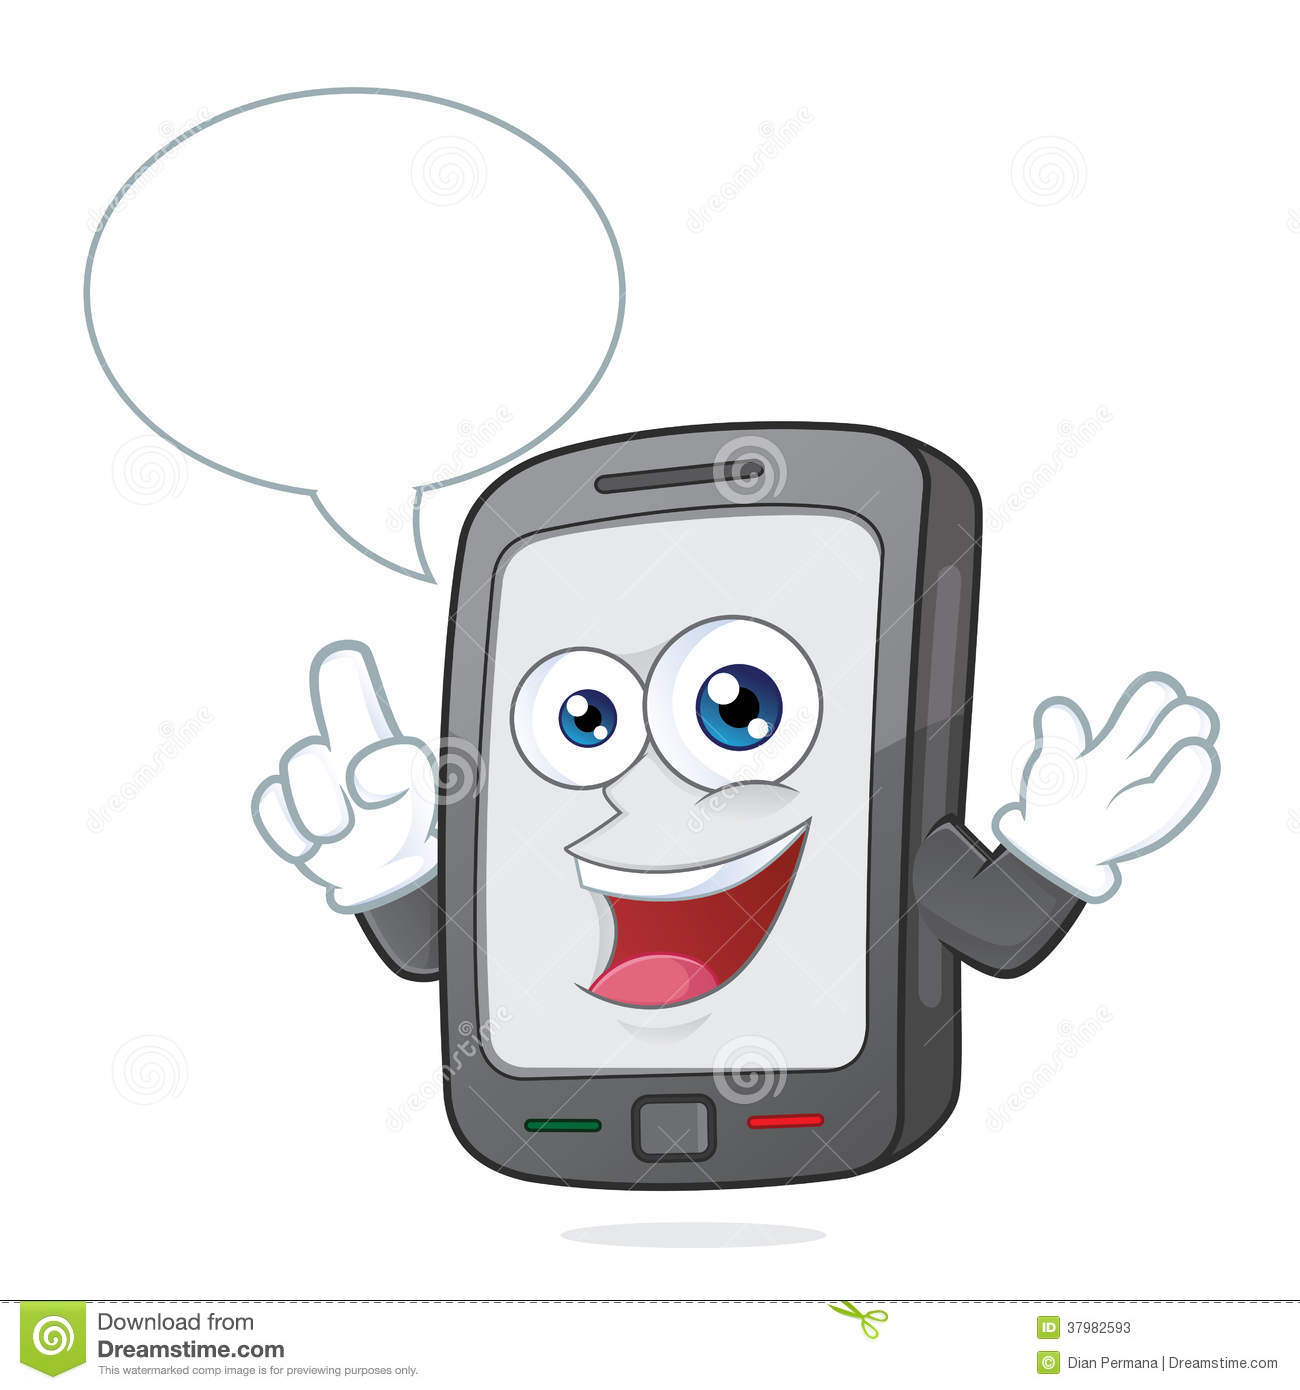 Clipart Picture Of A Smartphone Cartoon Character Talking With Speech